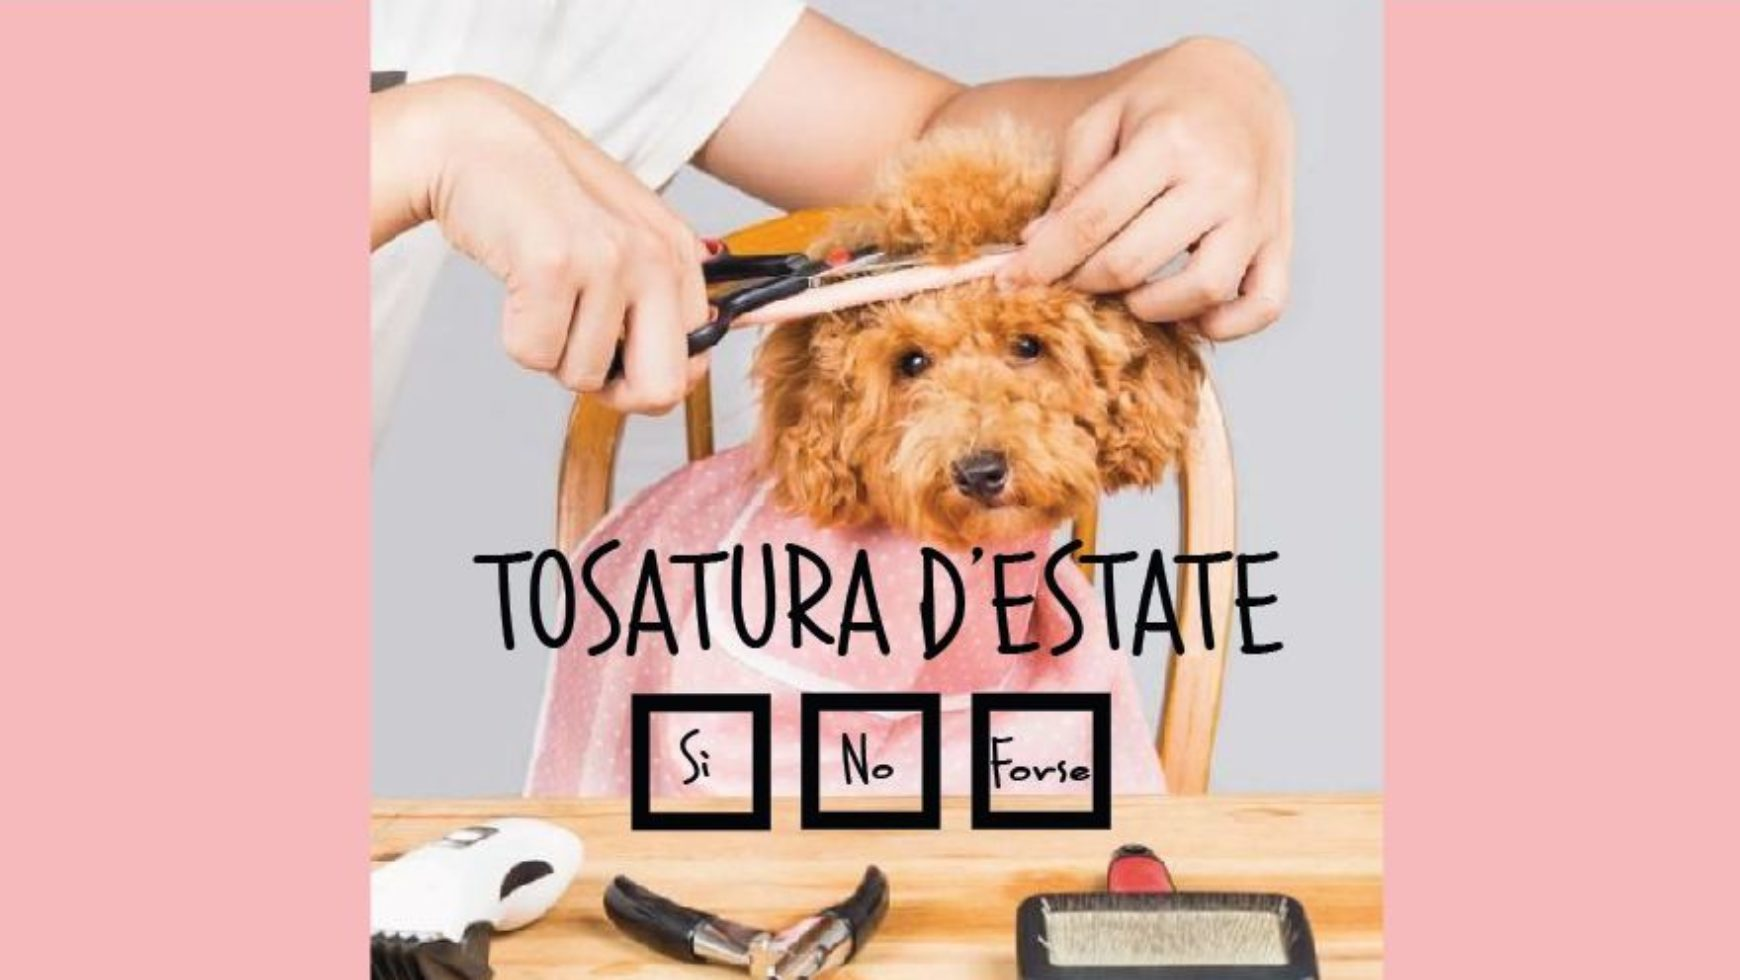 TOSARE IL CANE D'ESTATE: SI' O NO?